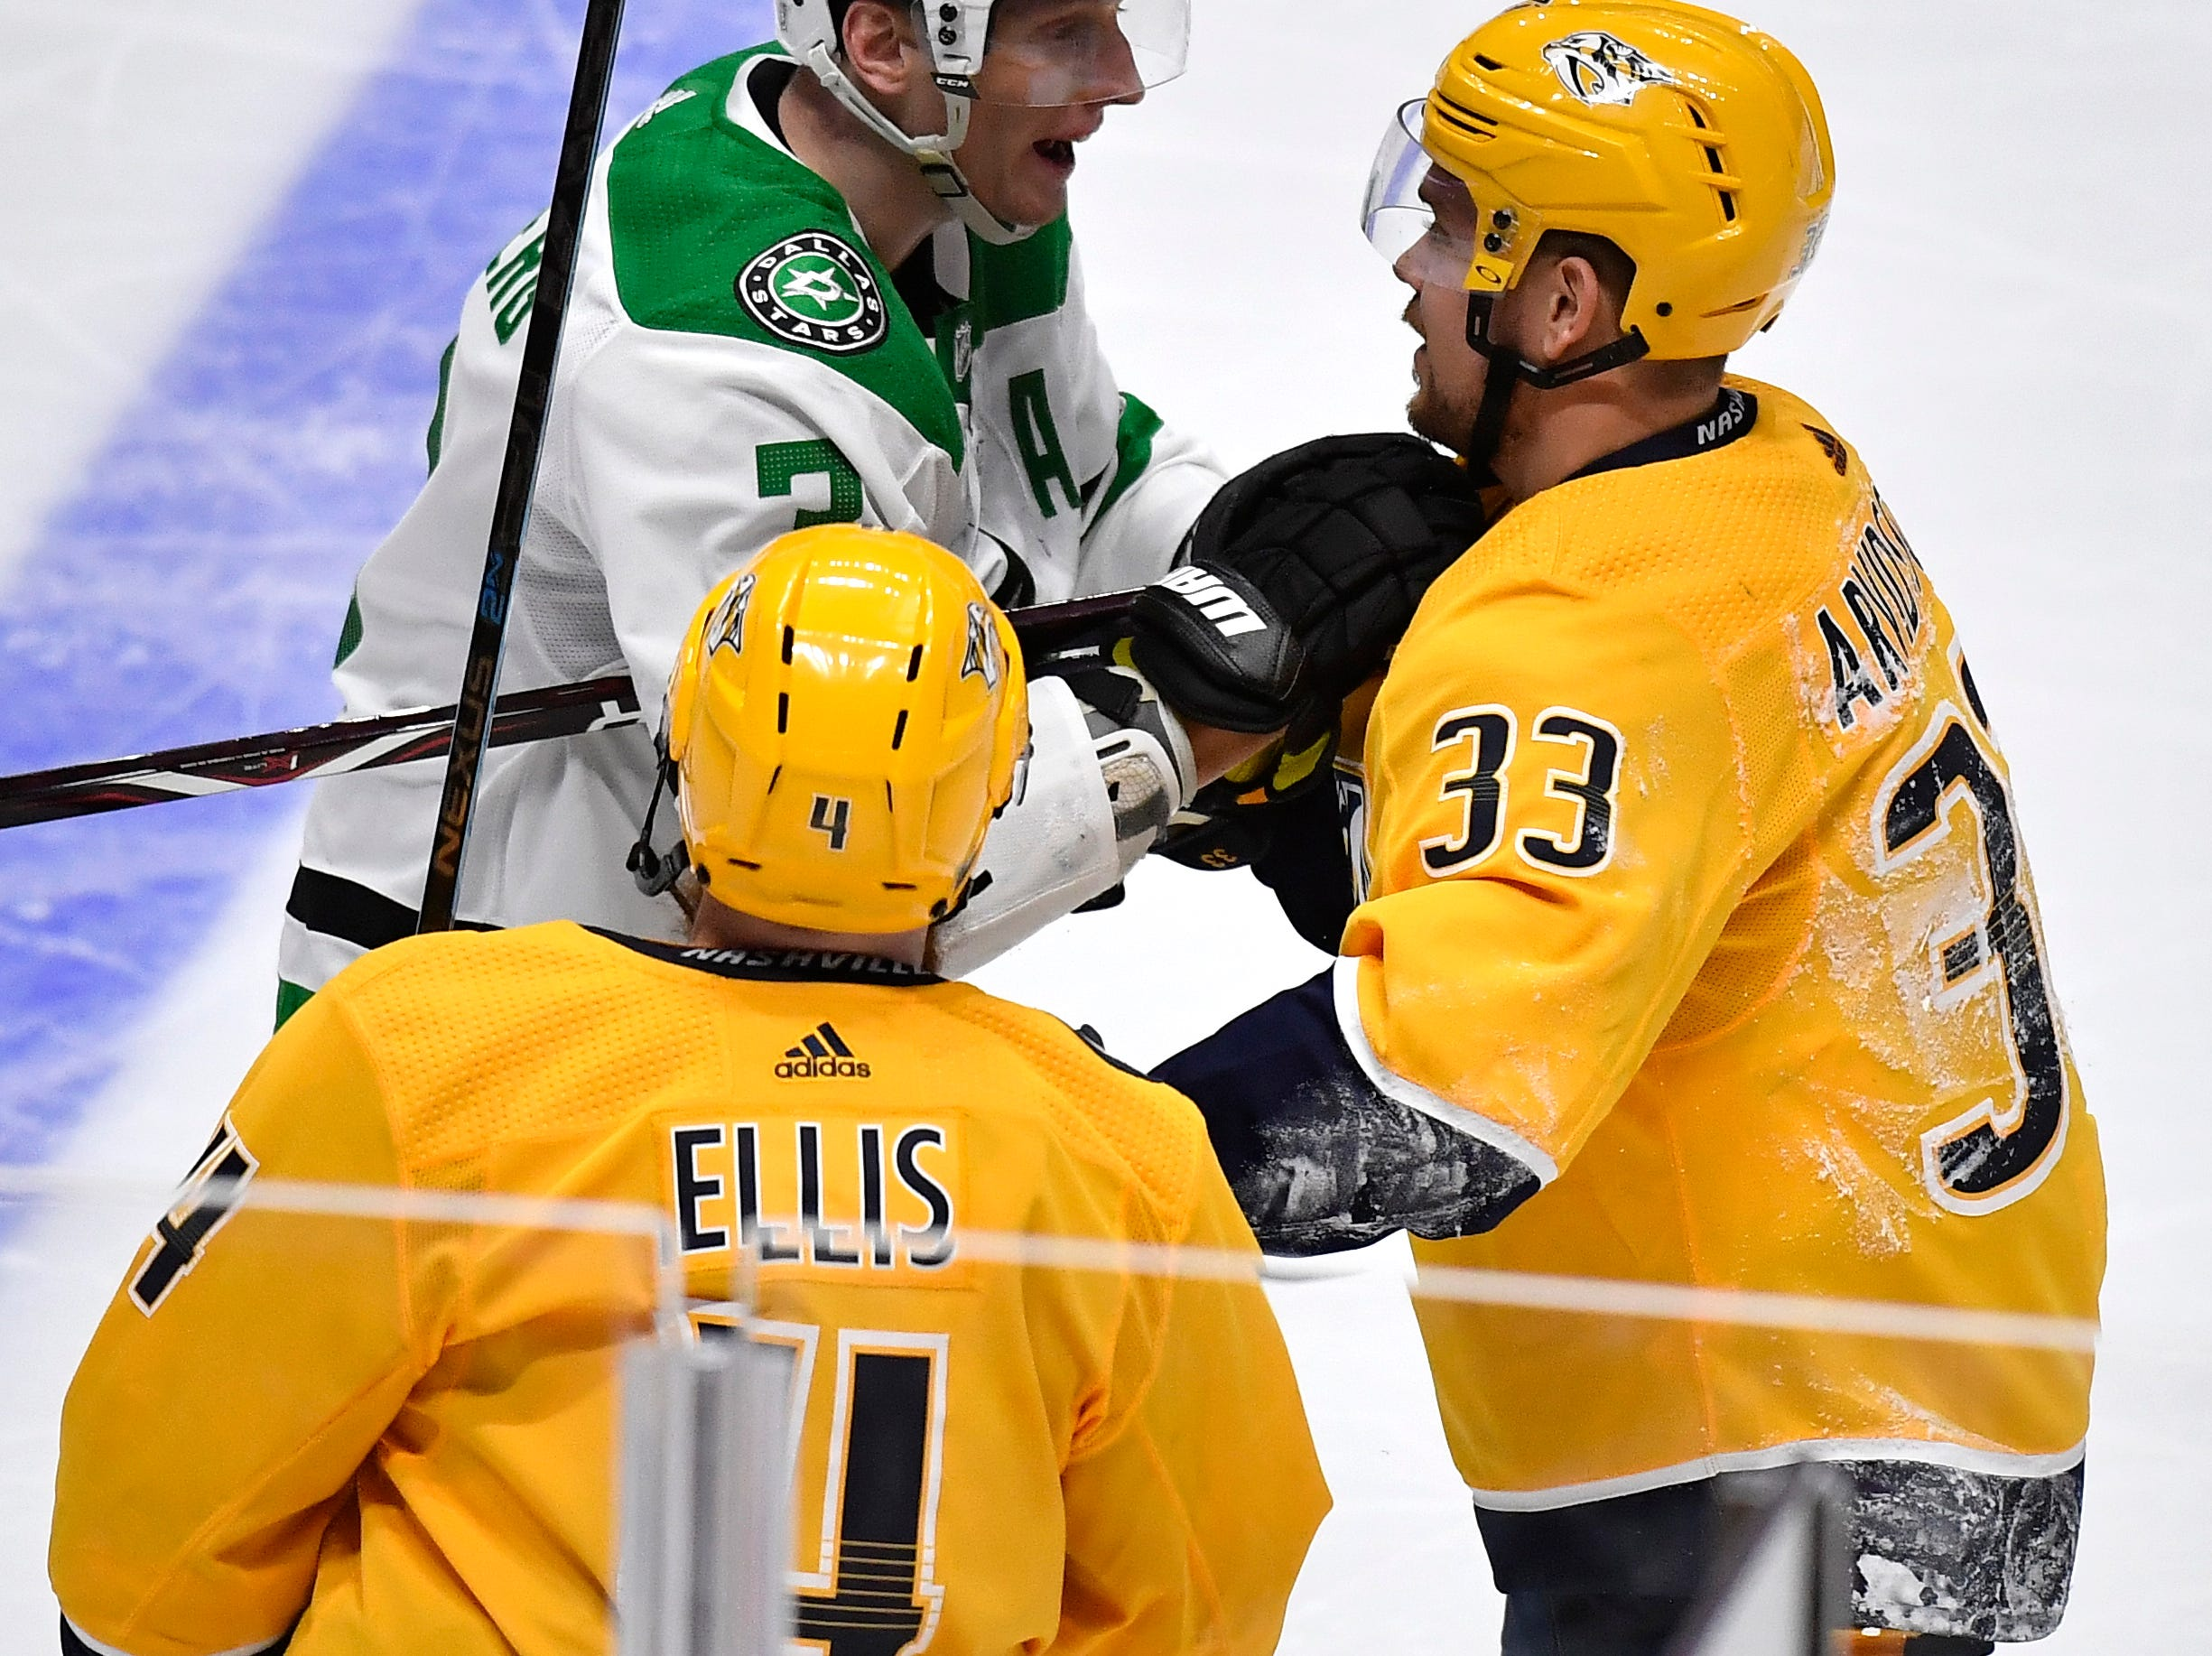 Dallas Stars defenseman John Klingberg (3) and Nashville Predators right wing Viktor Arvidsson (33) mix it up during the second period of the divisional semifinal game at Bridgestone Arena in Nashville, Tenn., Wednesday, April 10, 2019.